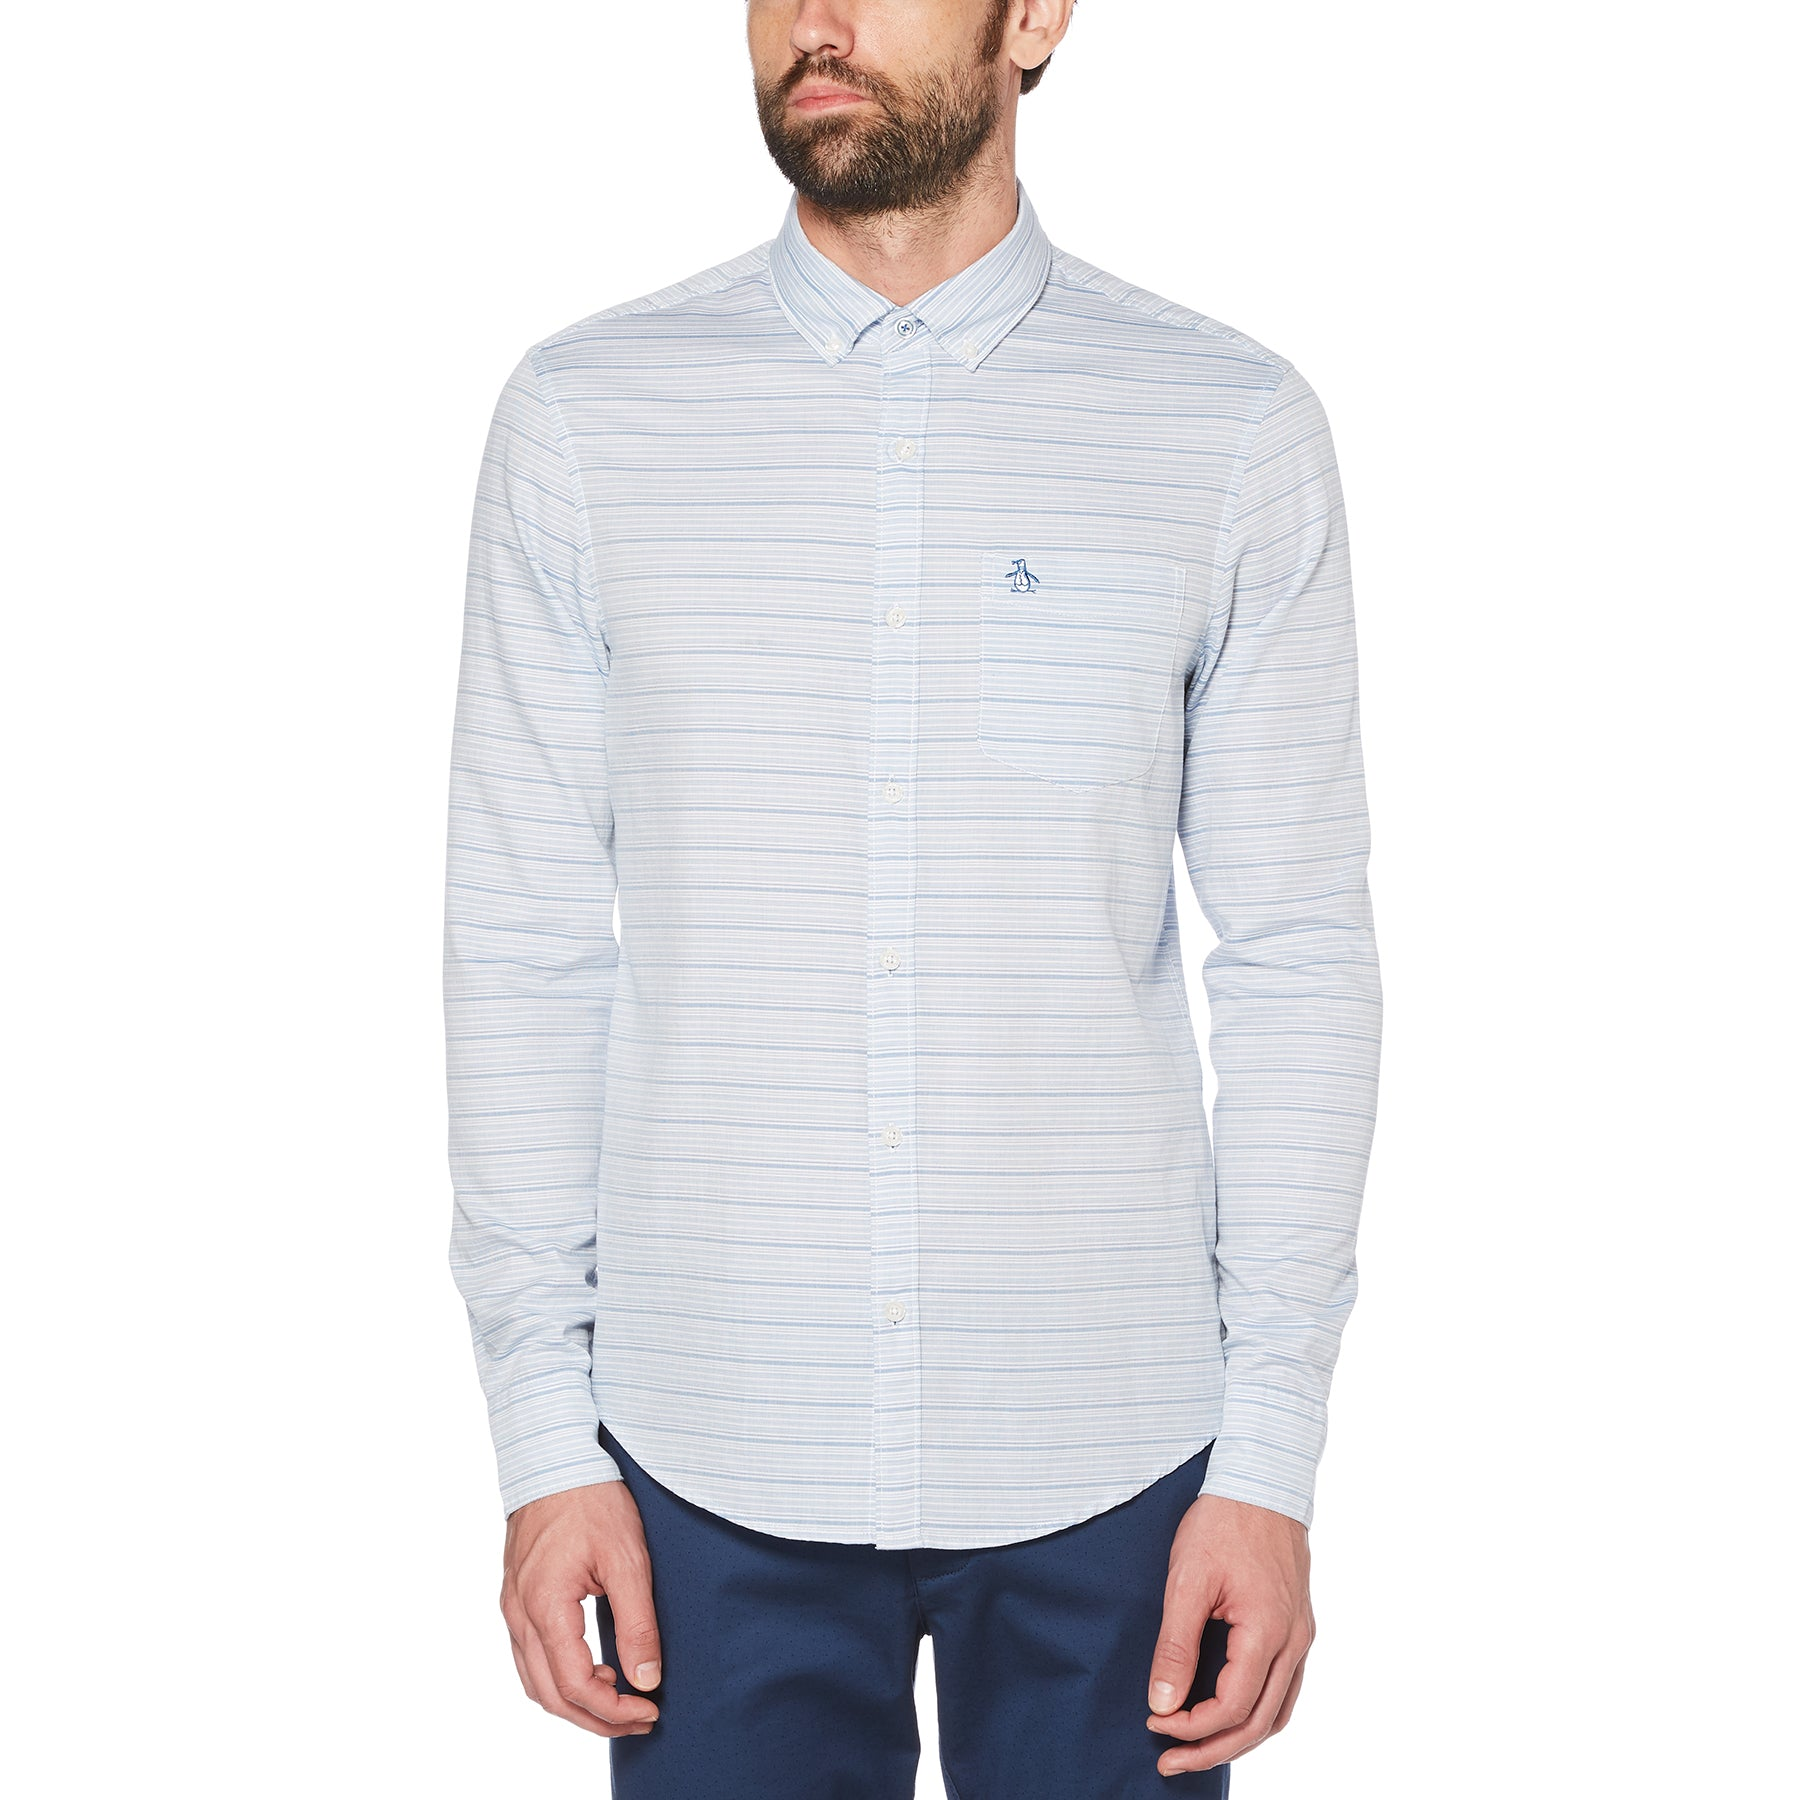 Original Penguin Long Sleeve Woven Shirt OPWS9133